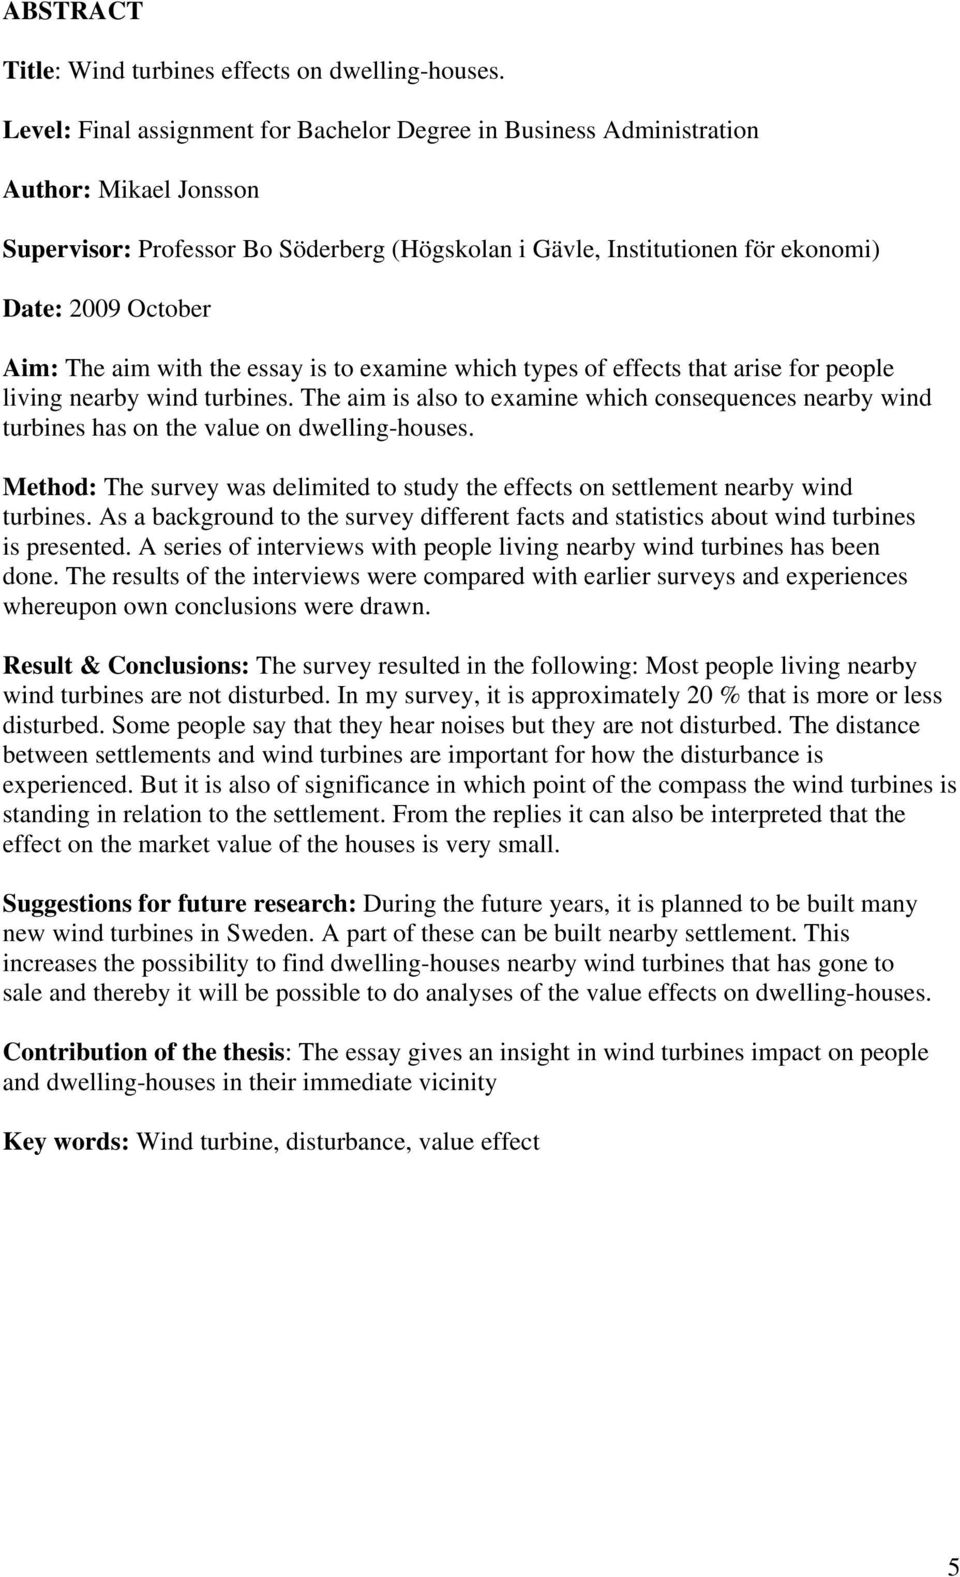 The aim with the essay is to examine which types of effects that arise for people living nearby wind turbines.